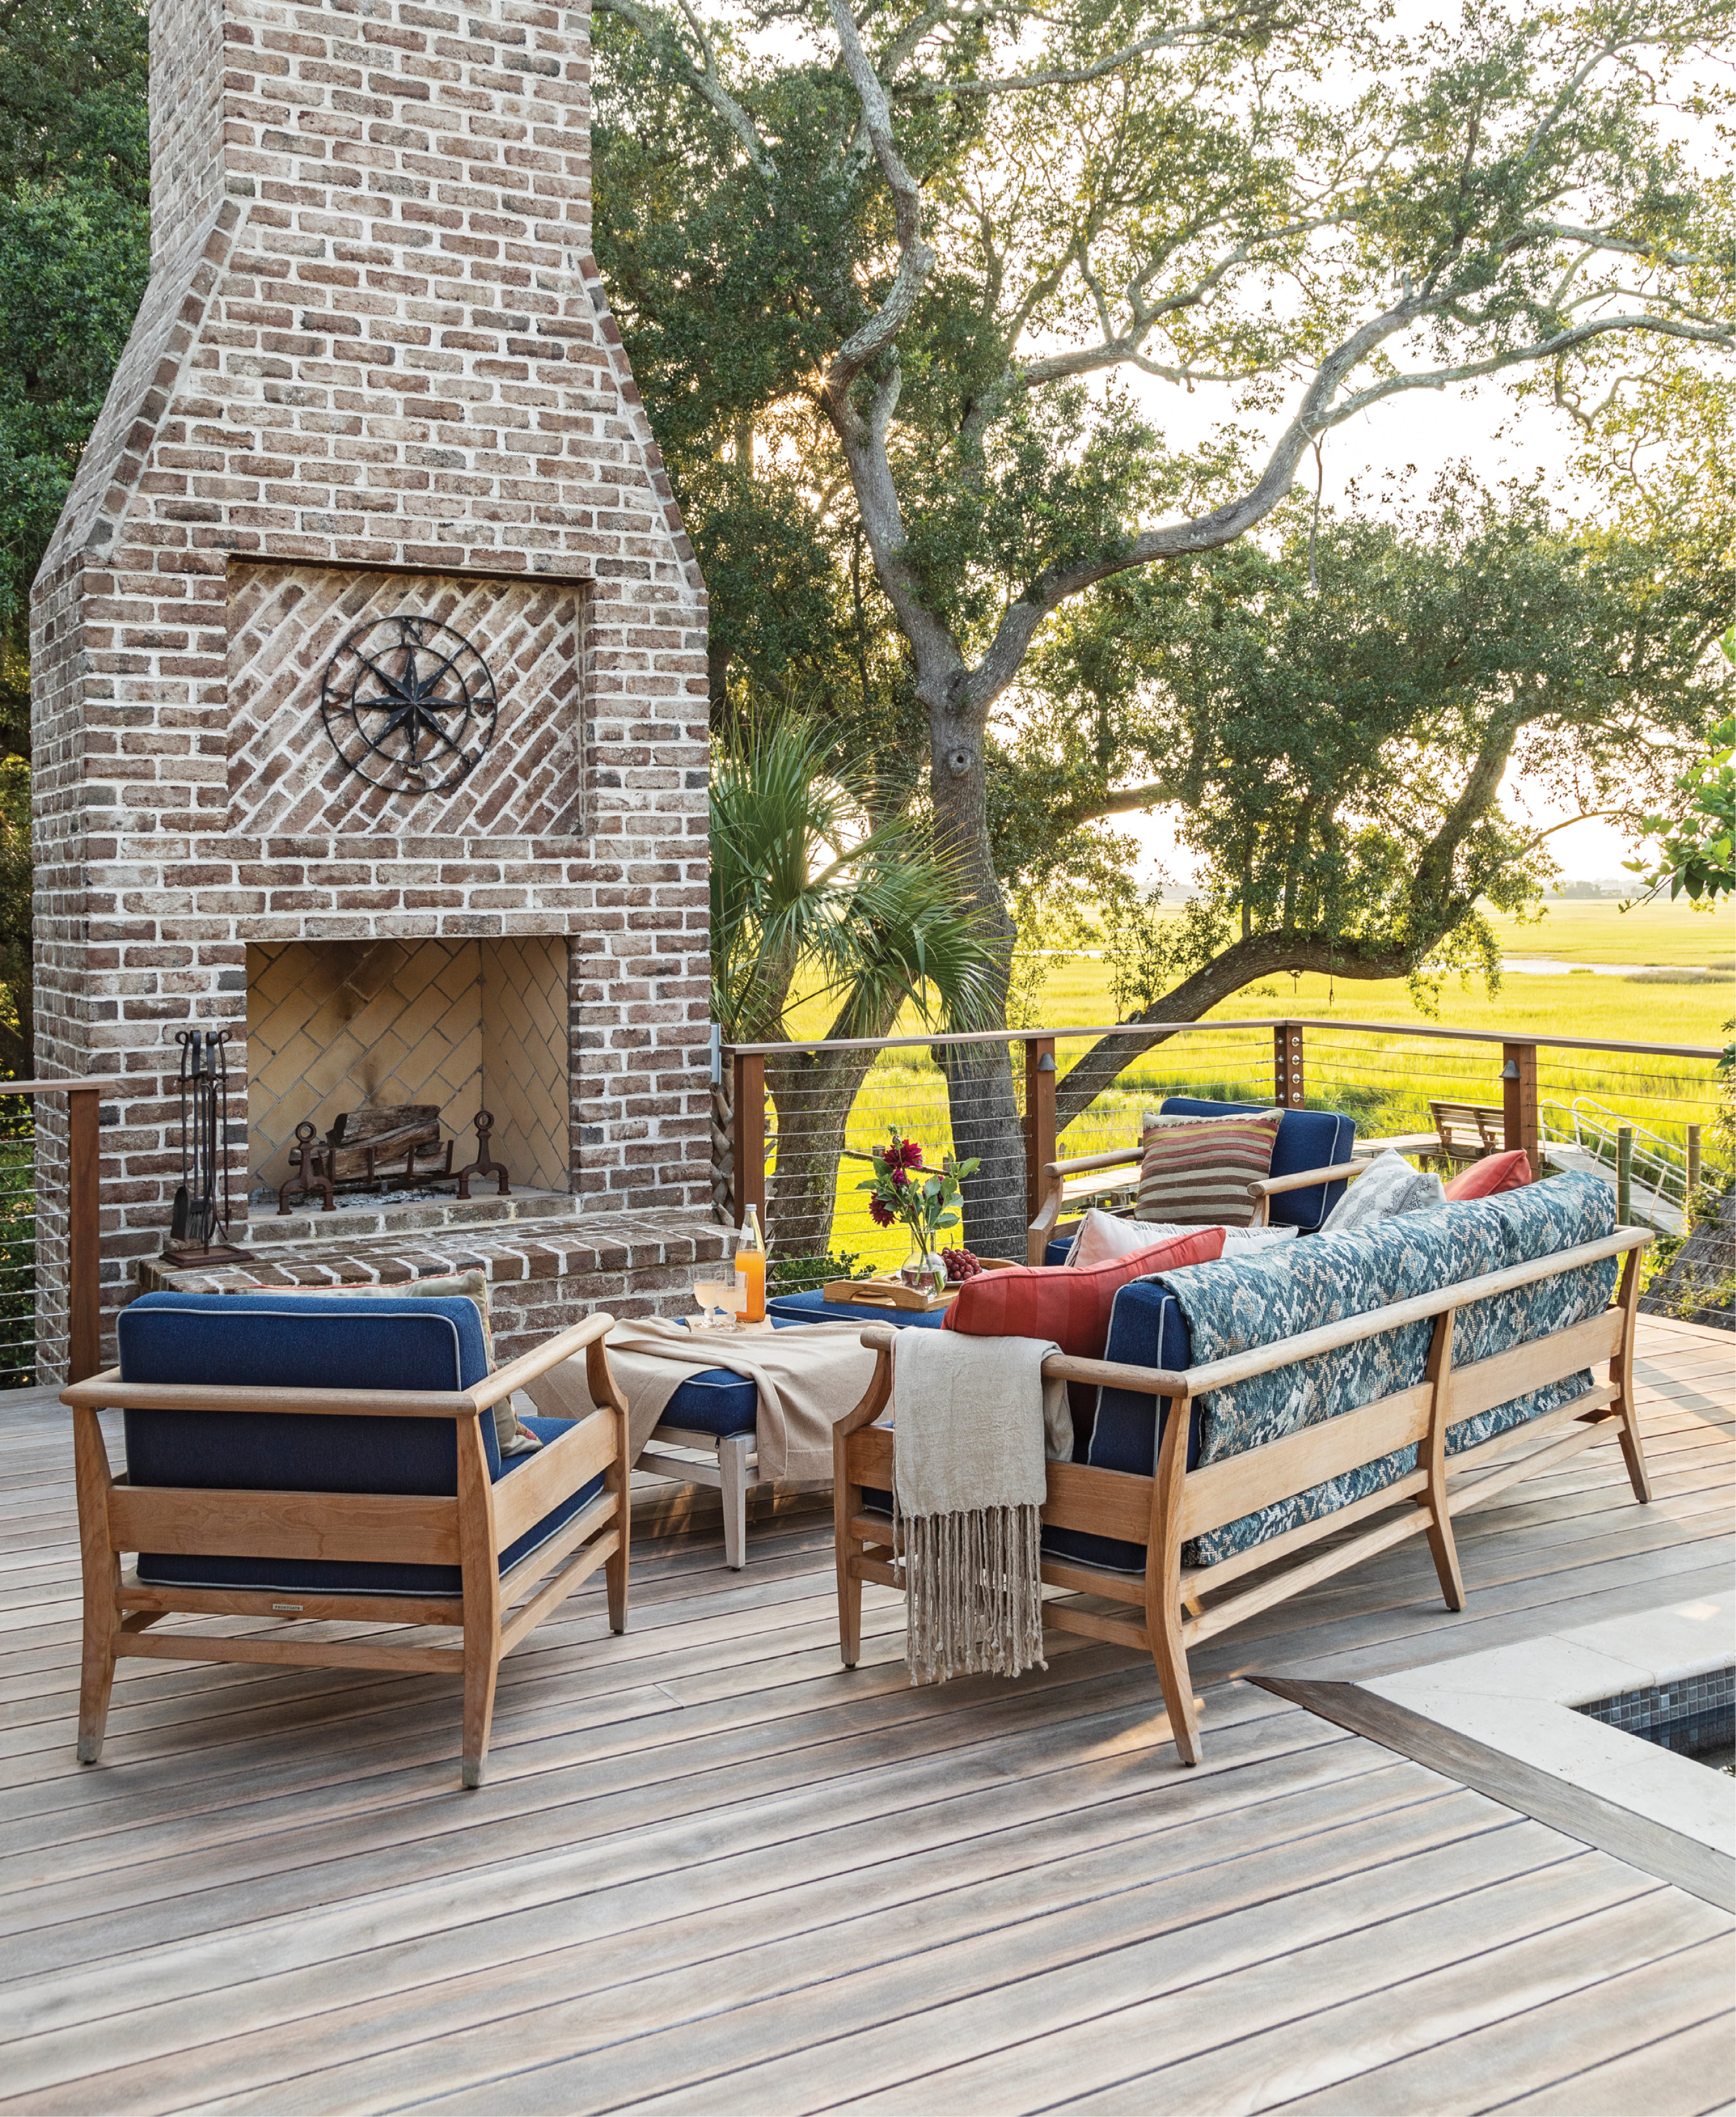 LOWCOUNTRY OASIS: A love of sailing, the Holy City, and outdoor living brought a Chicago couple back to James Island to build their forever home on an idyllic marsh-front lot.